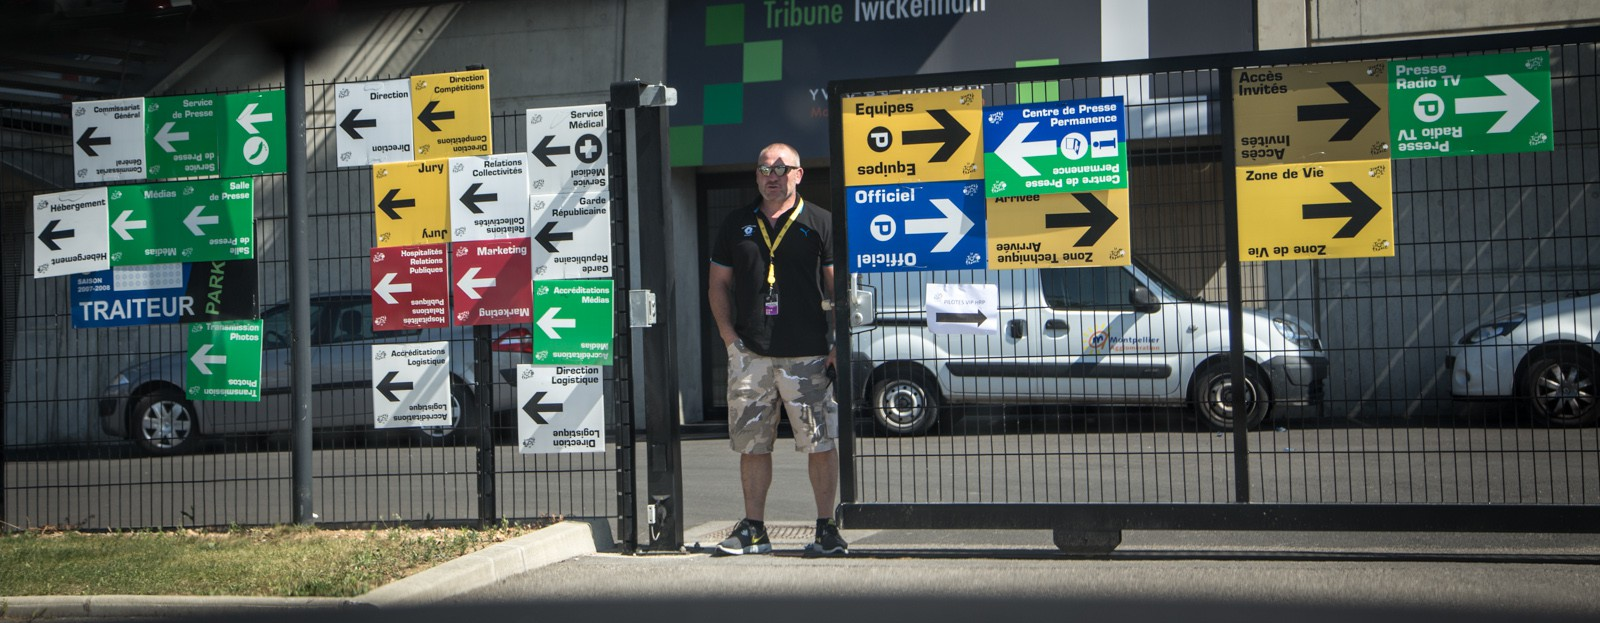 Each of these signs is for a different group of people associated with the Tour. There are more than 4,500 people involved in the Tour de France -- a massive logistical exercise.